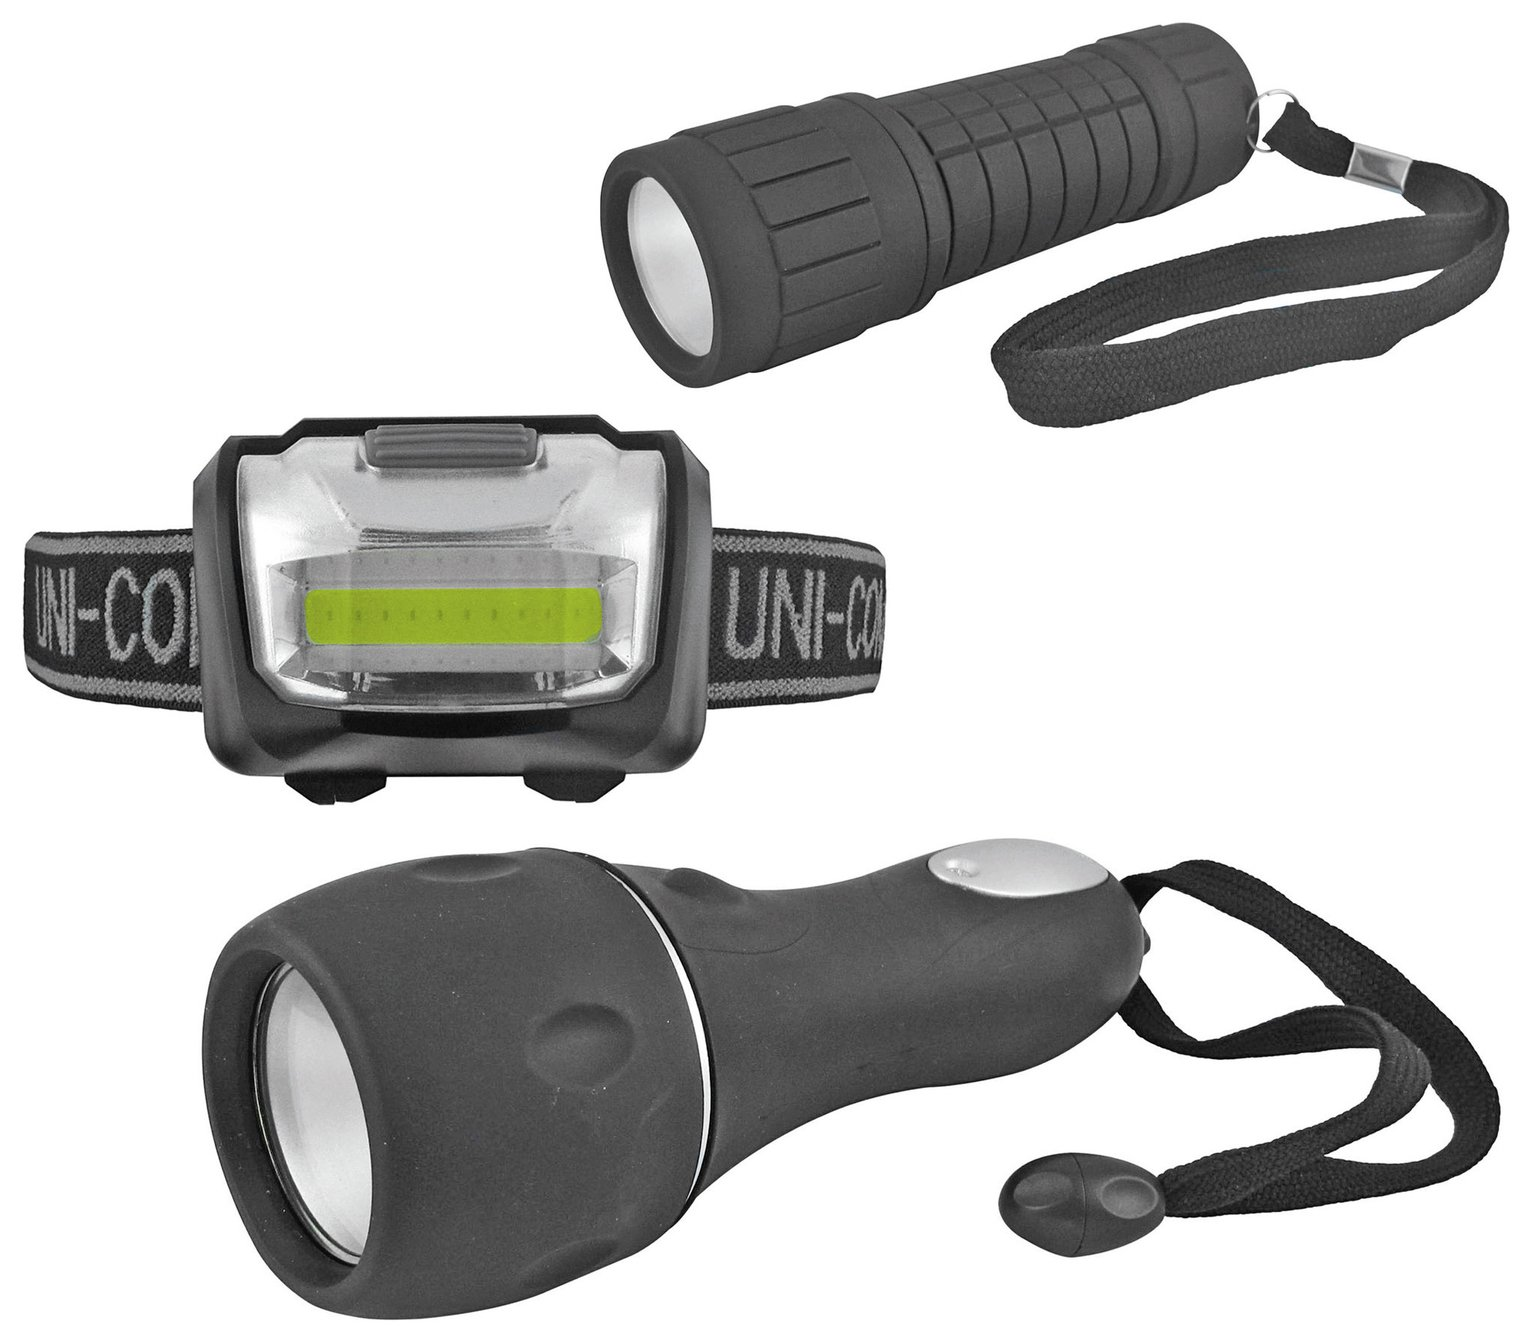 Uni-Com COB LED Torch Set